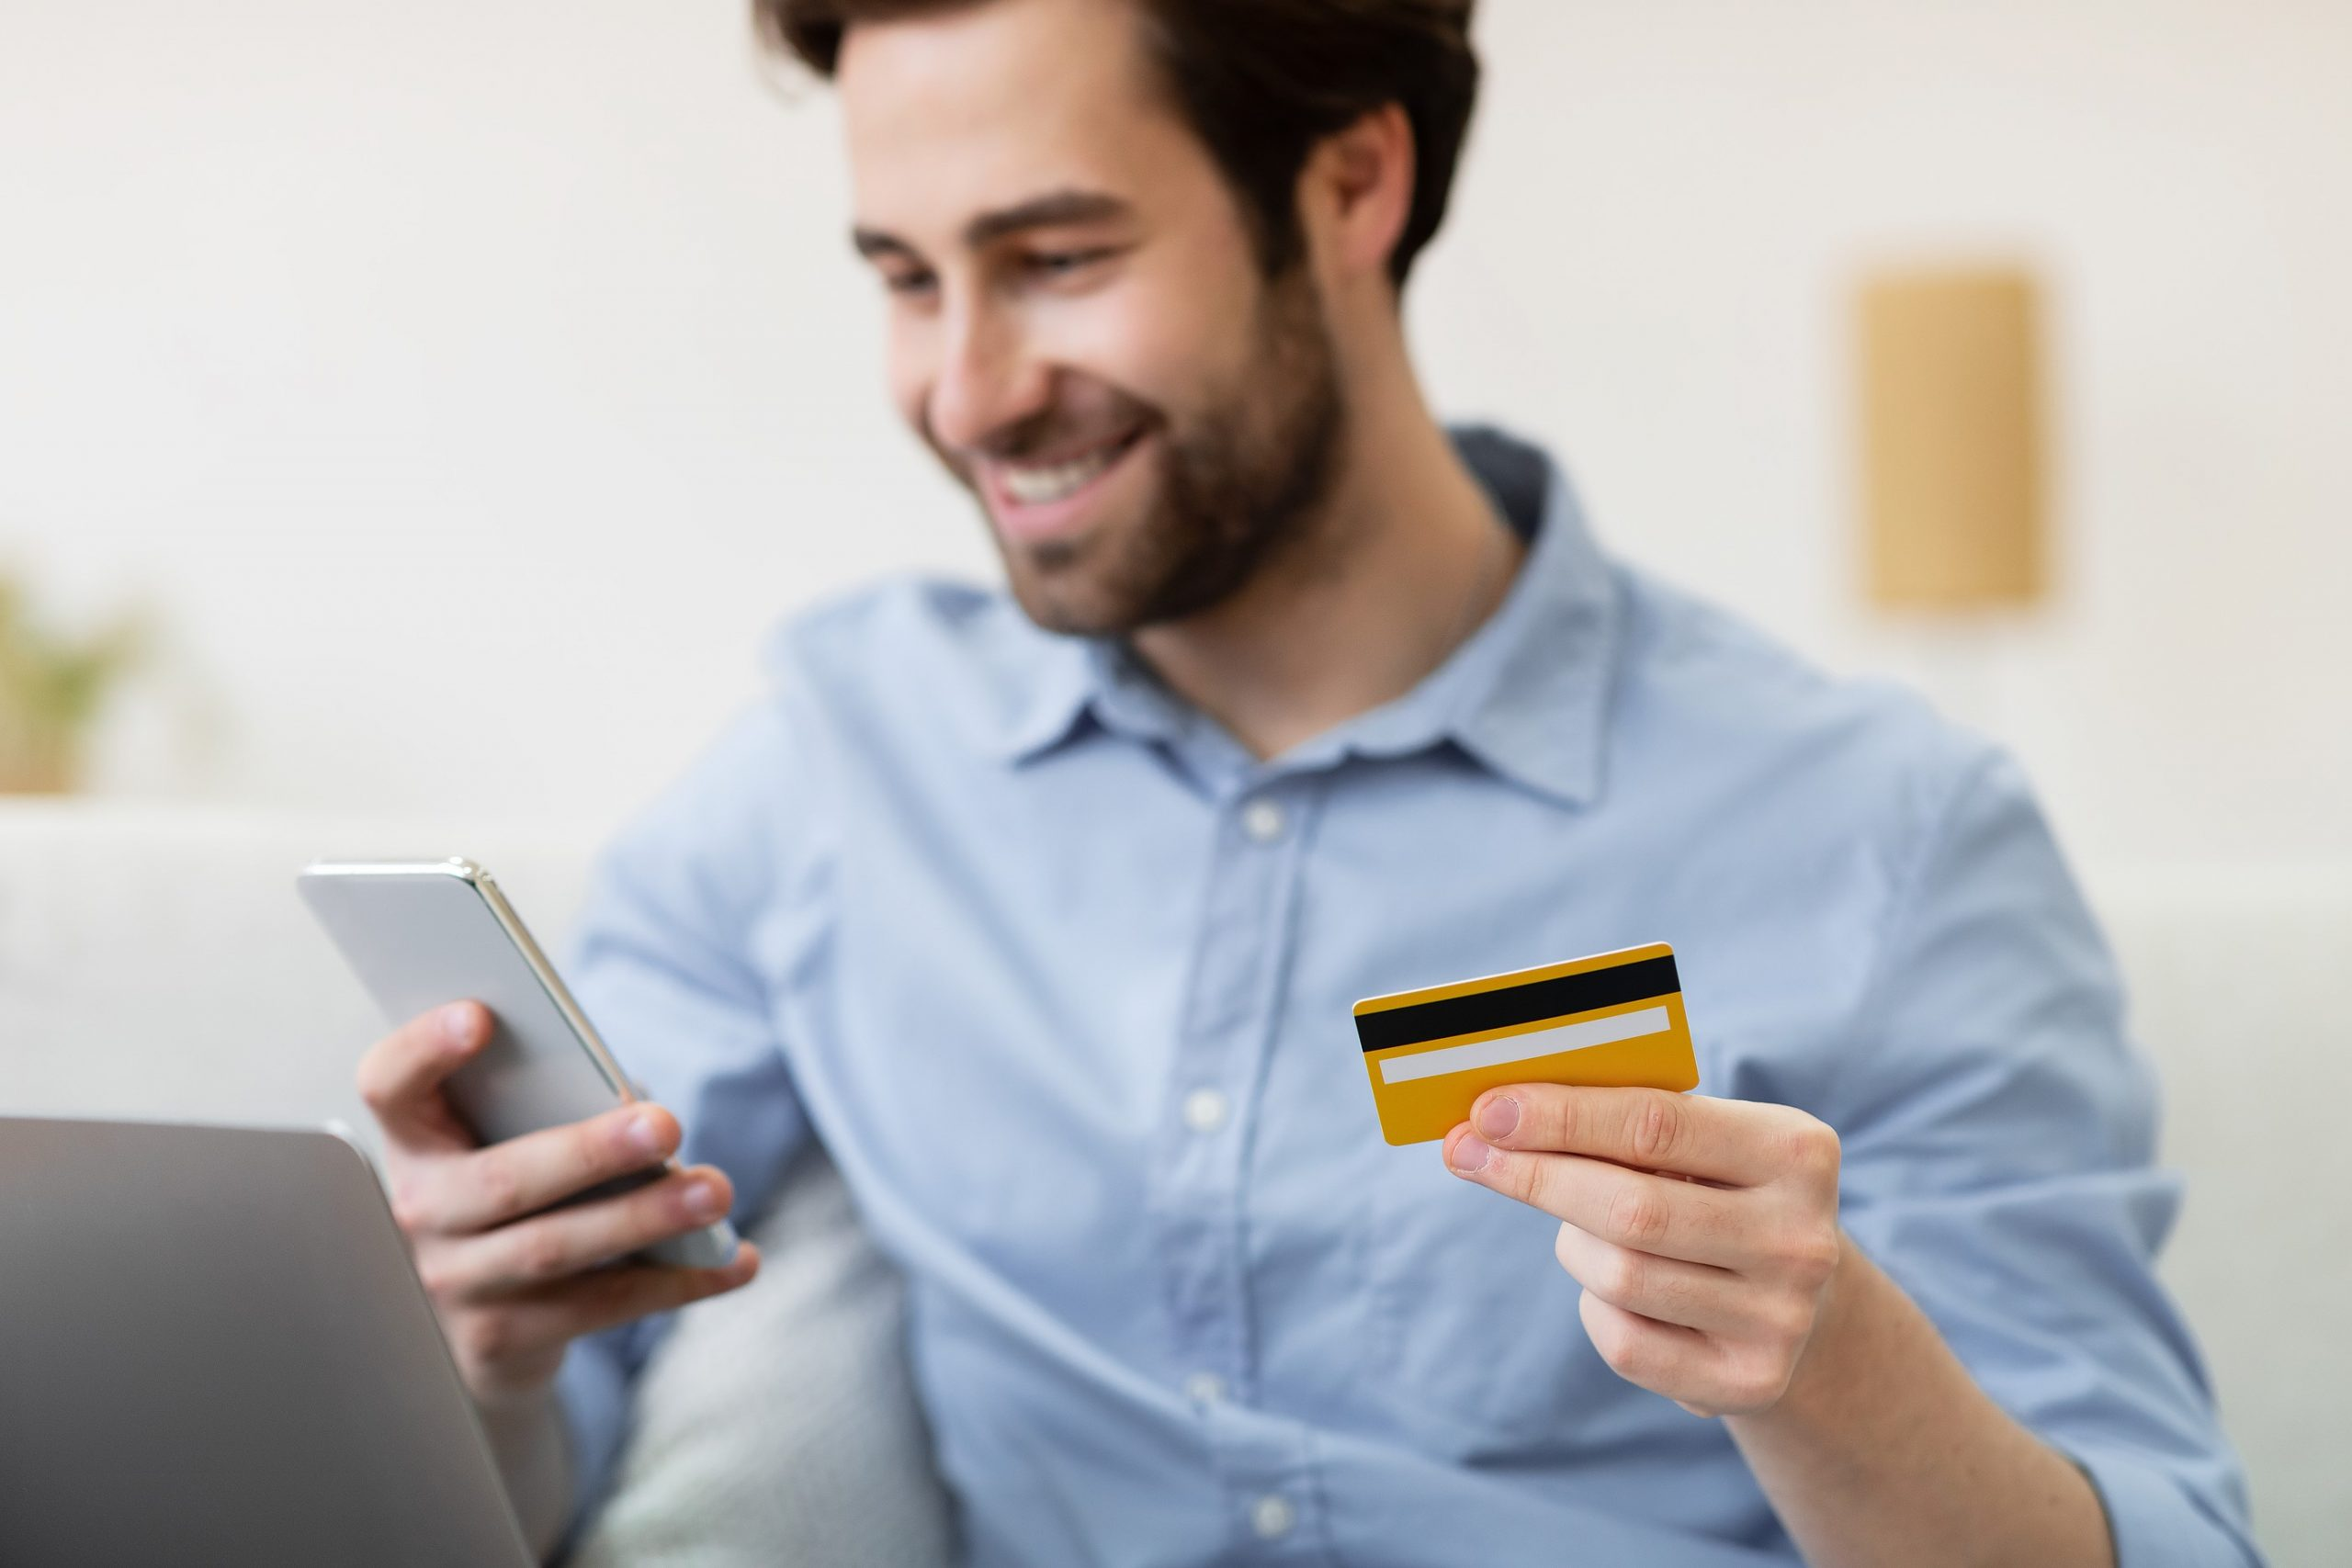 Young, smiling man holds atm card and looks at phone.  Learn about personal saving account rates at GHS FCU.